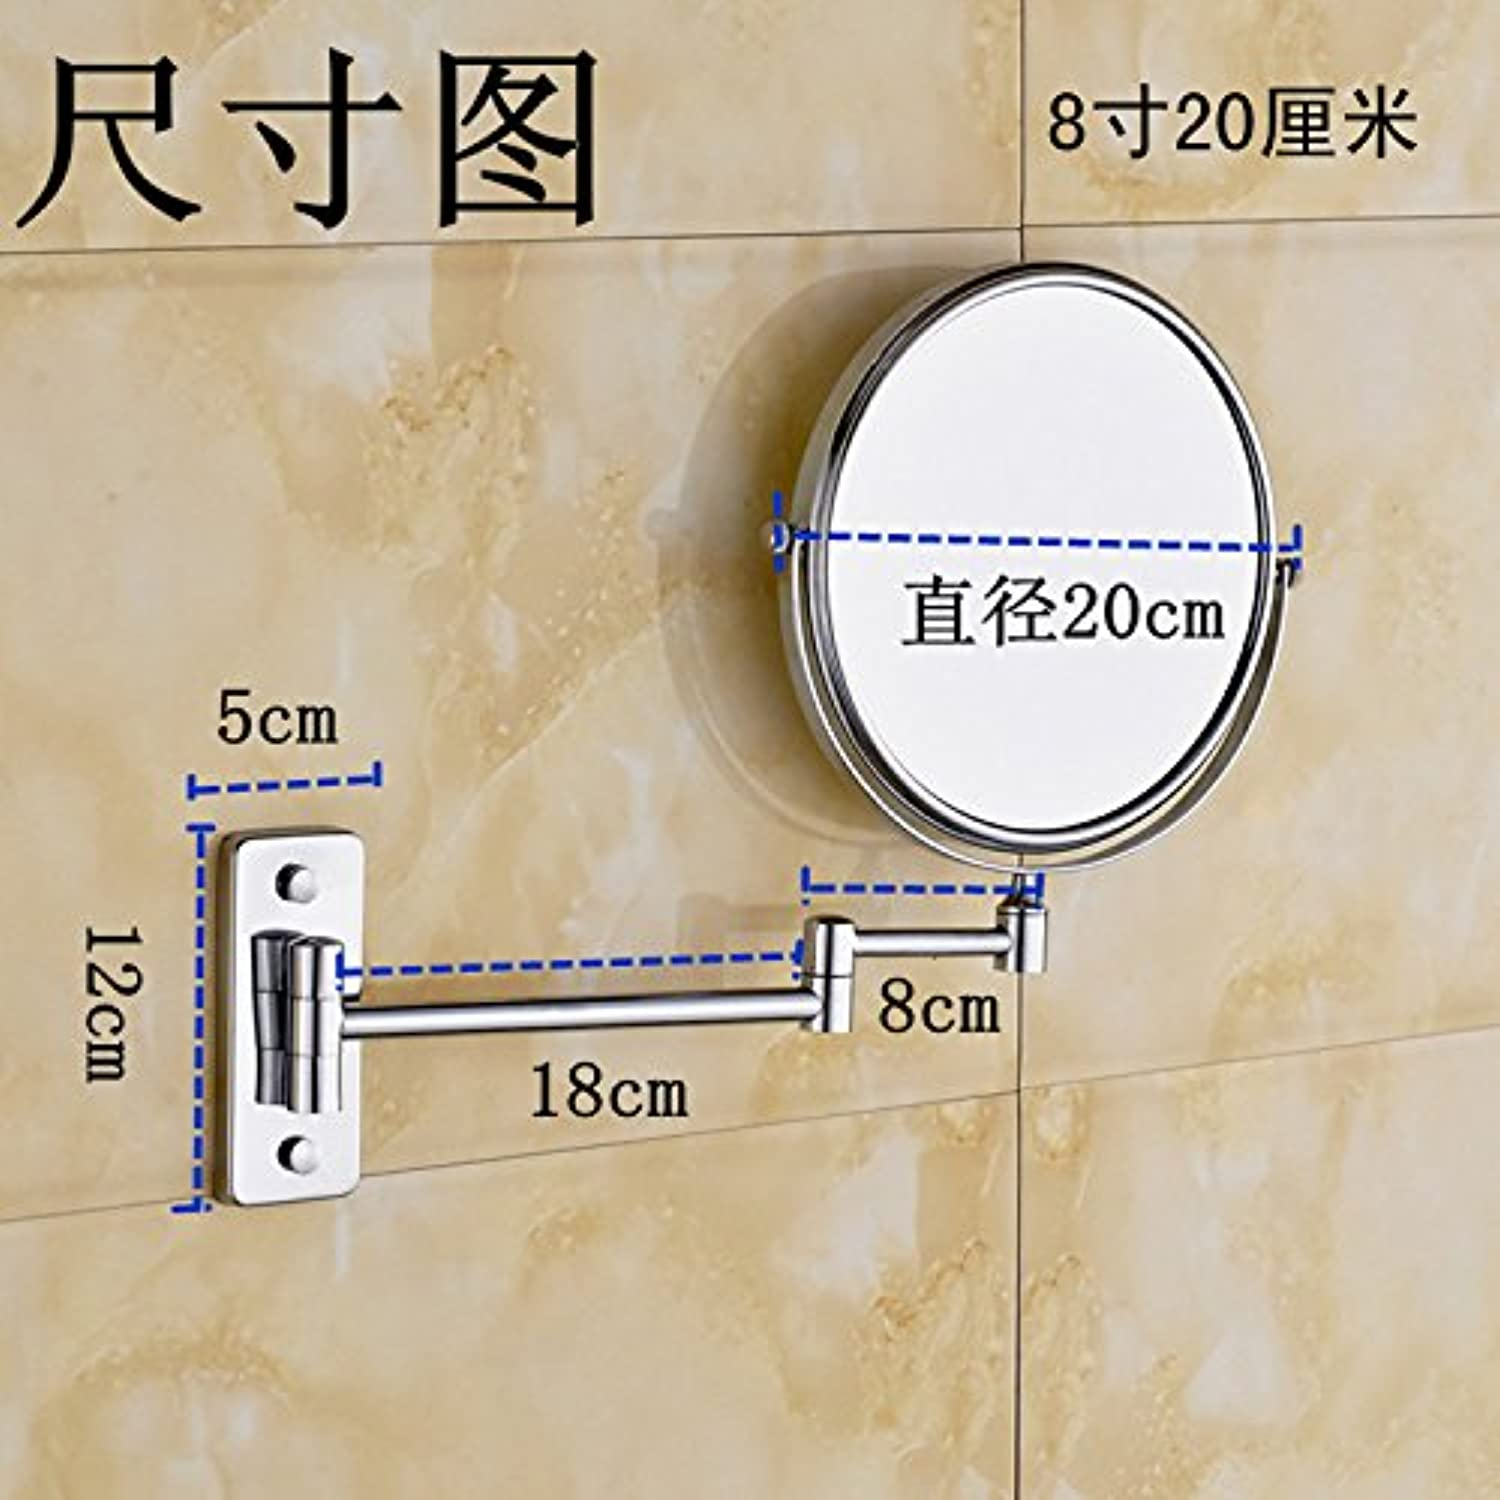 Bathroom vanity mirror retractable wall folding toilet mirror wall mount magnification mirror 8 inches (20 centimeters)